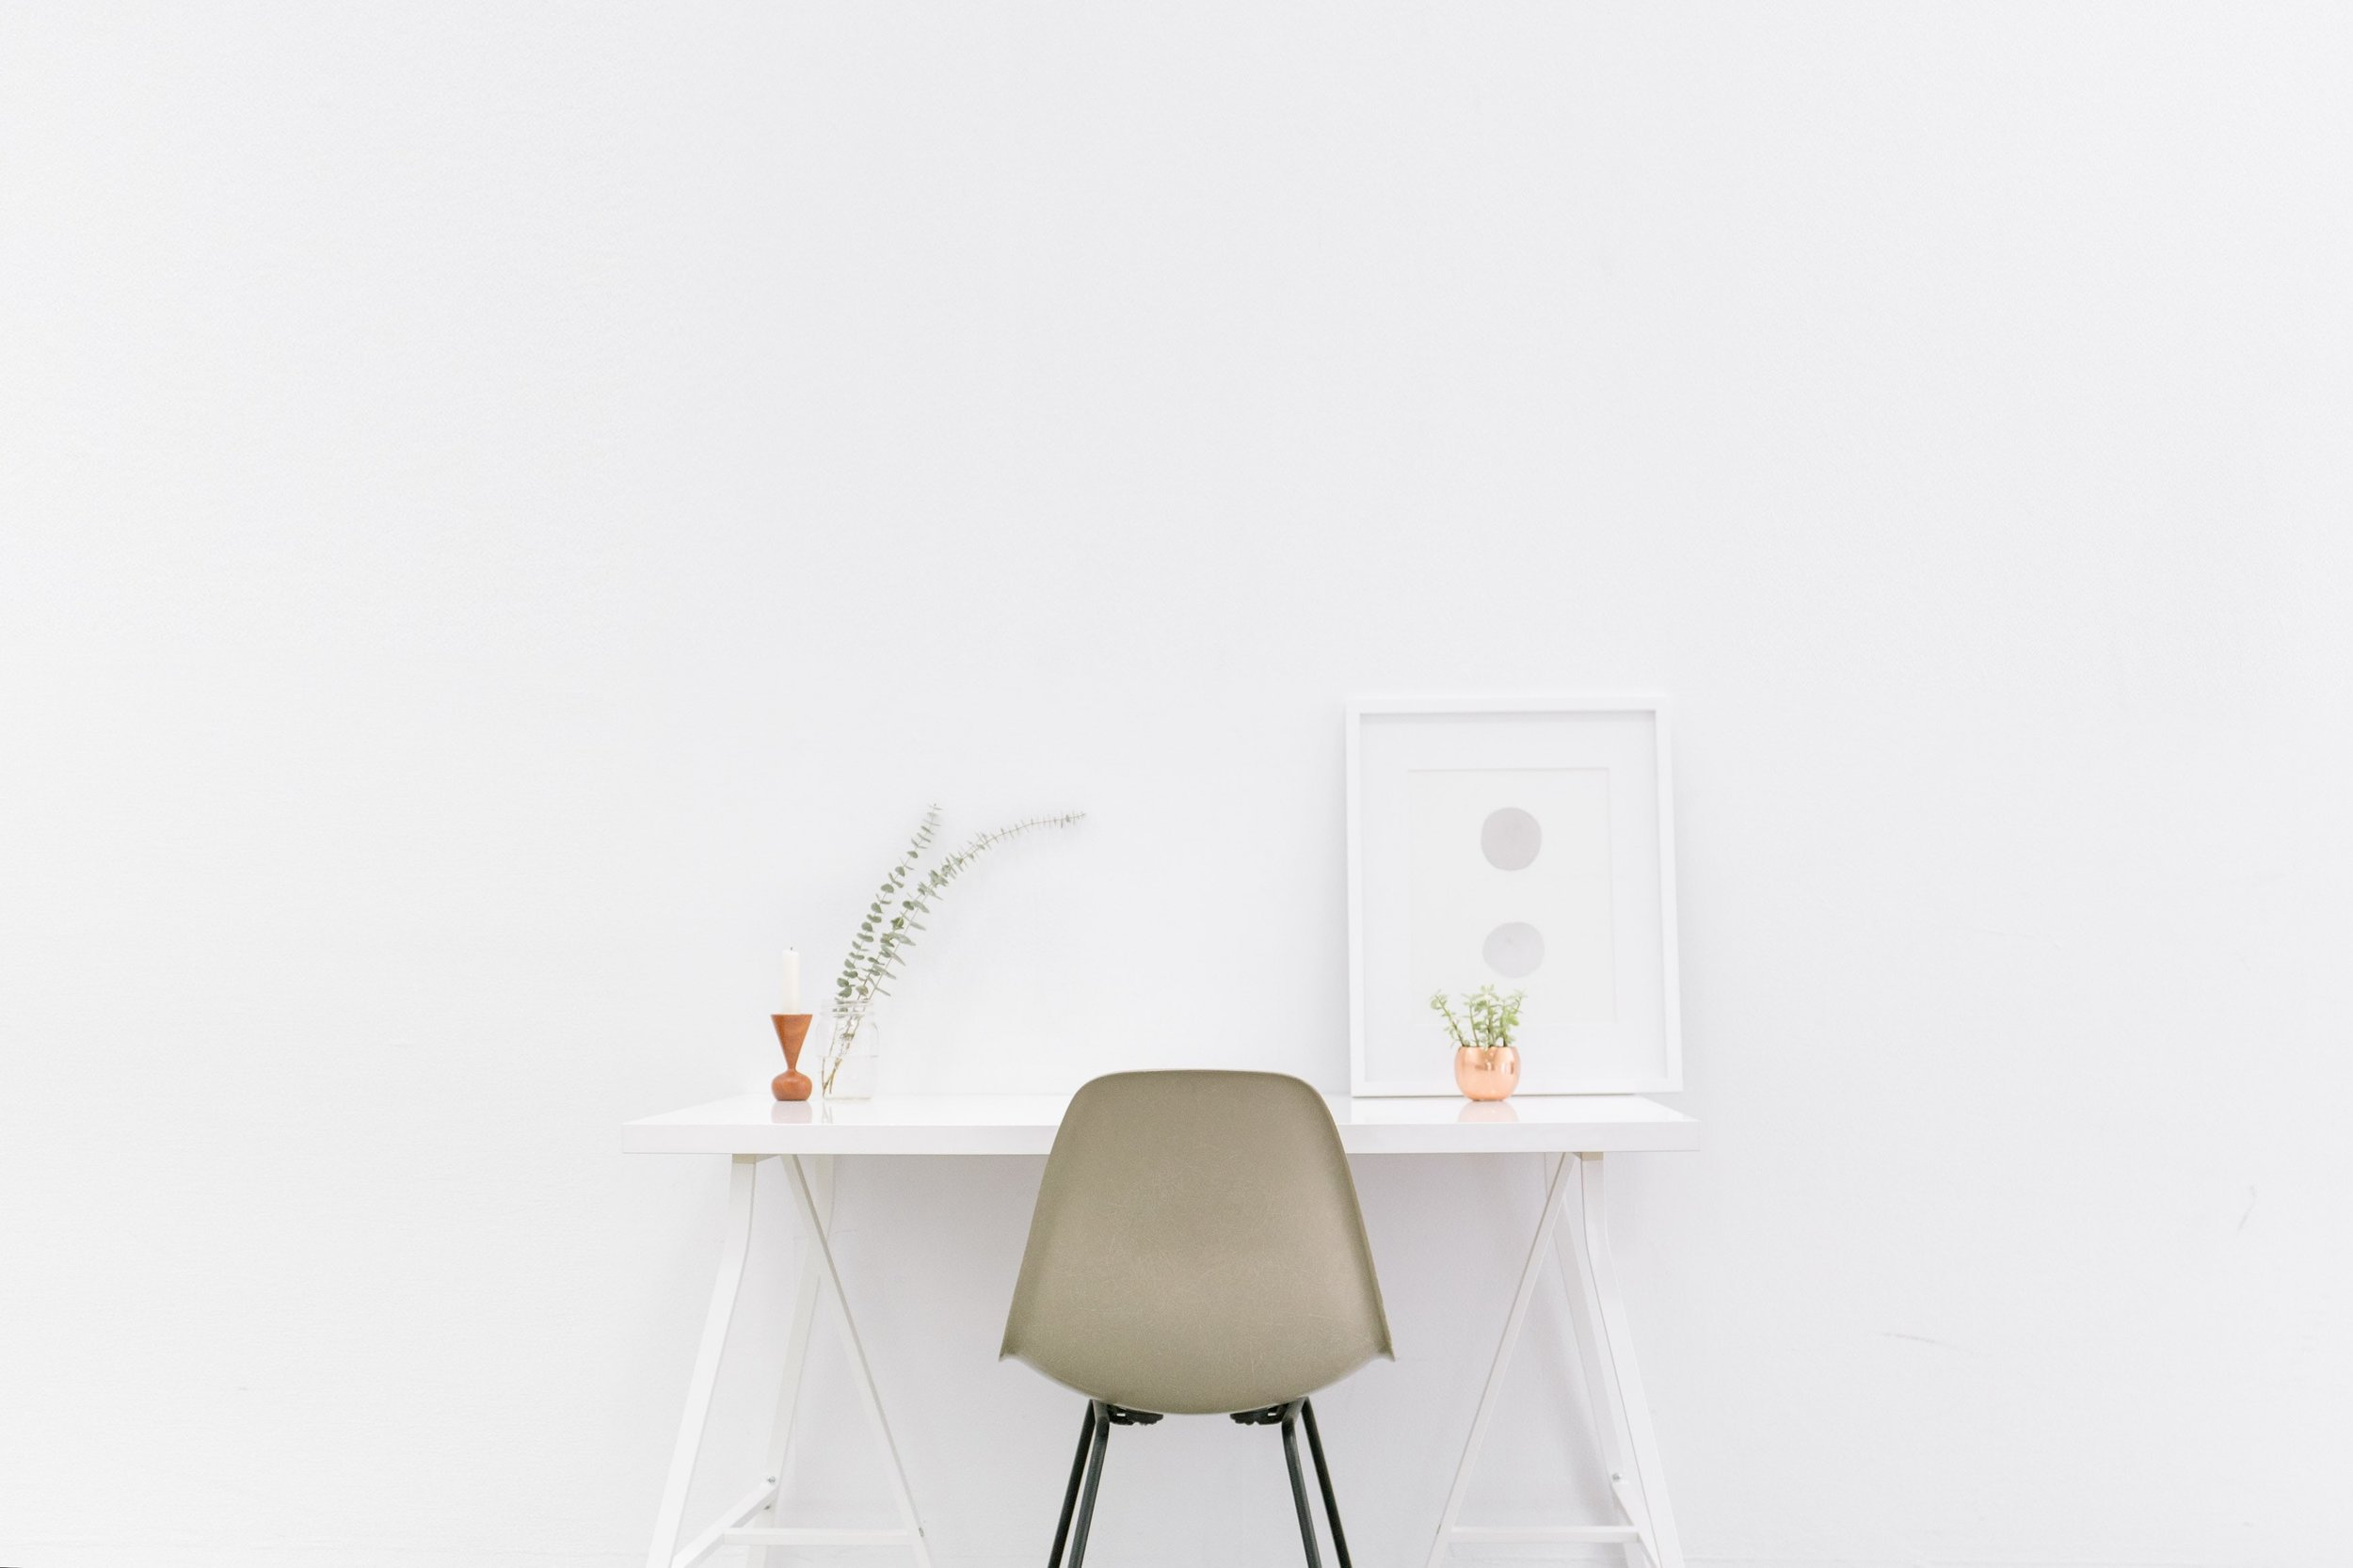 Minimalism - What is it really all about?